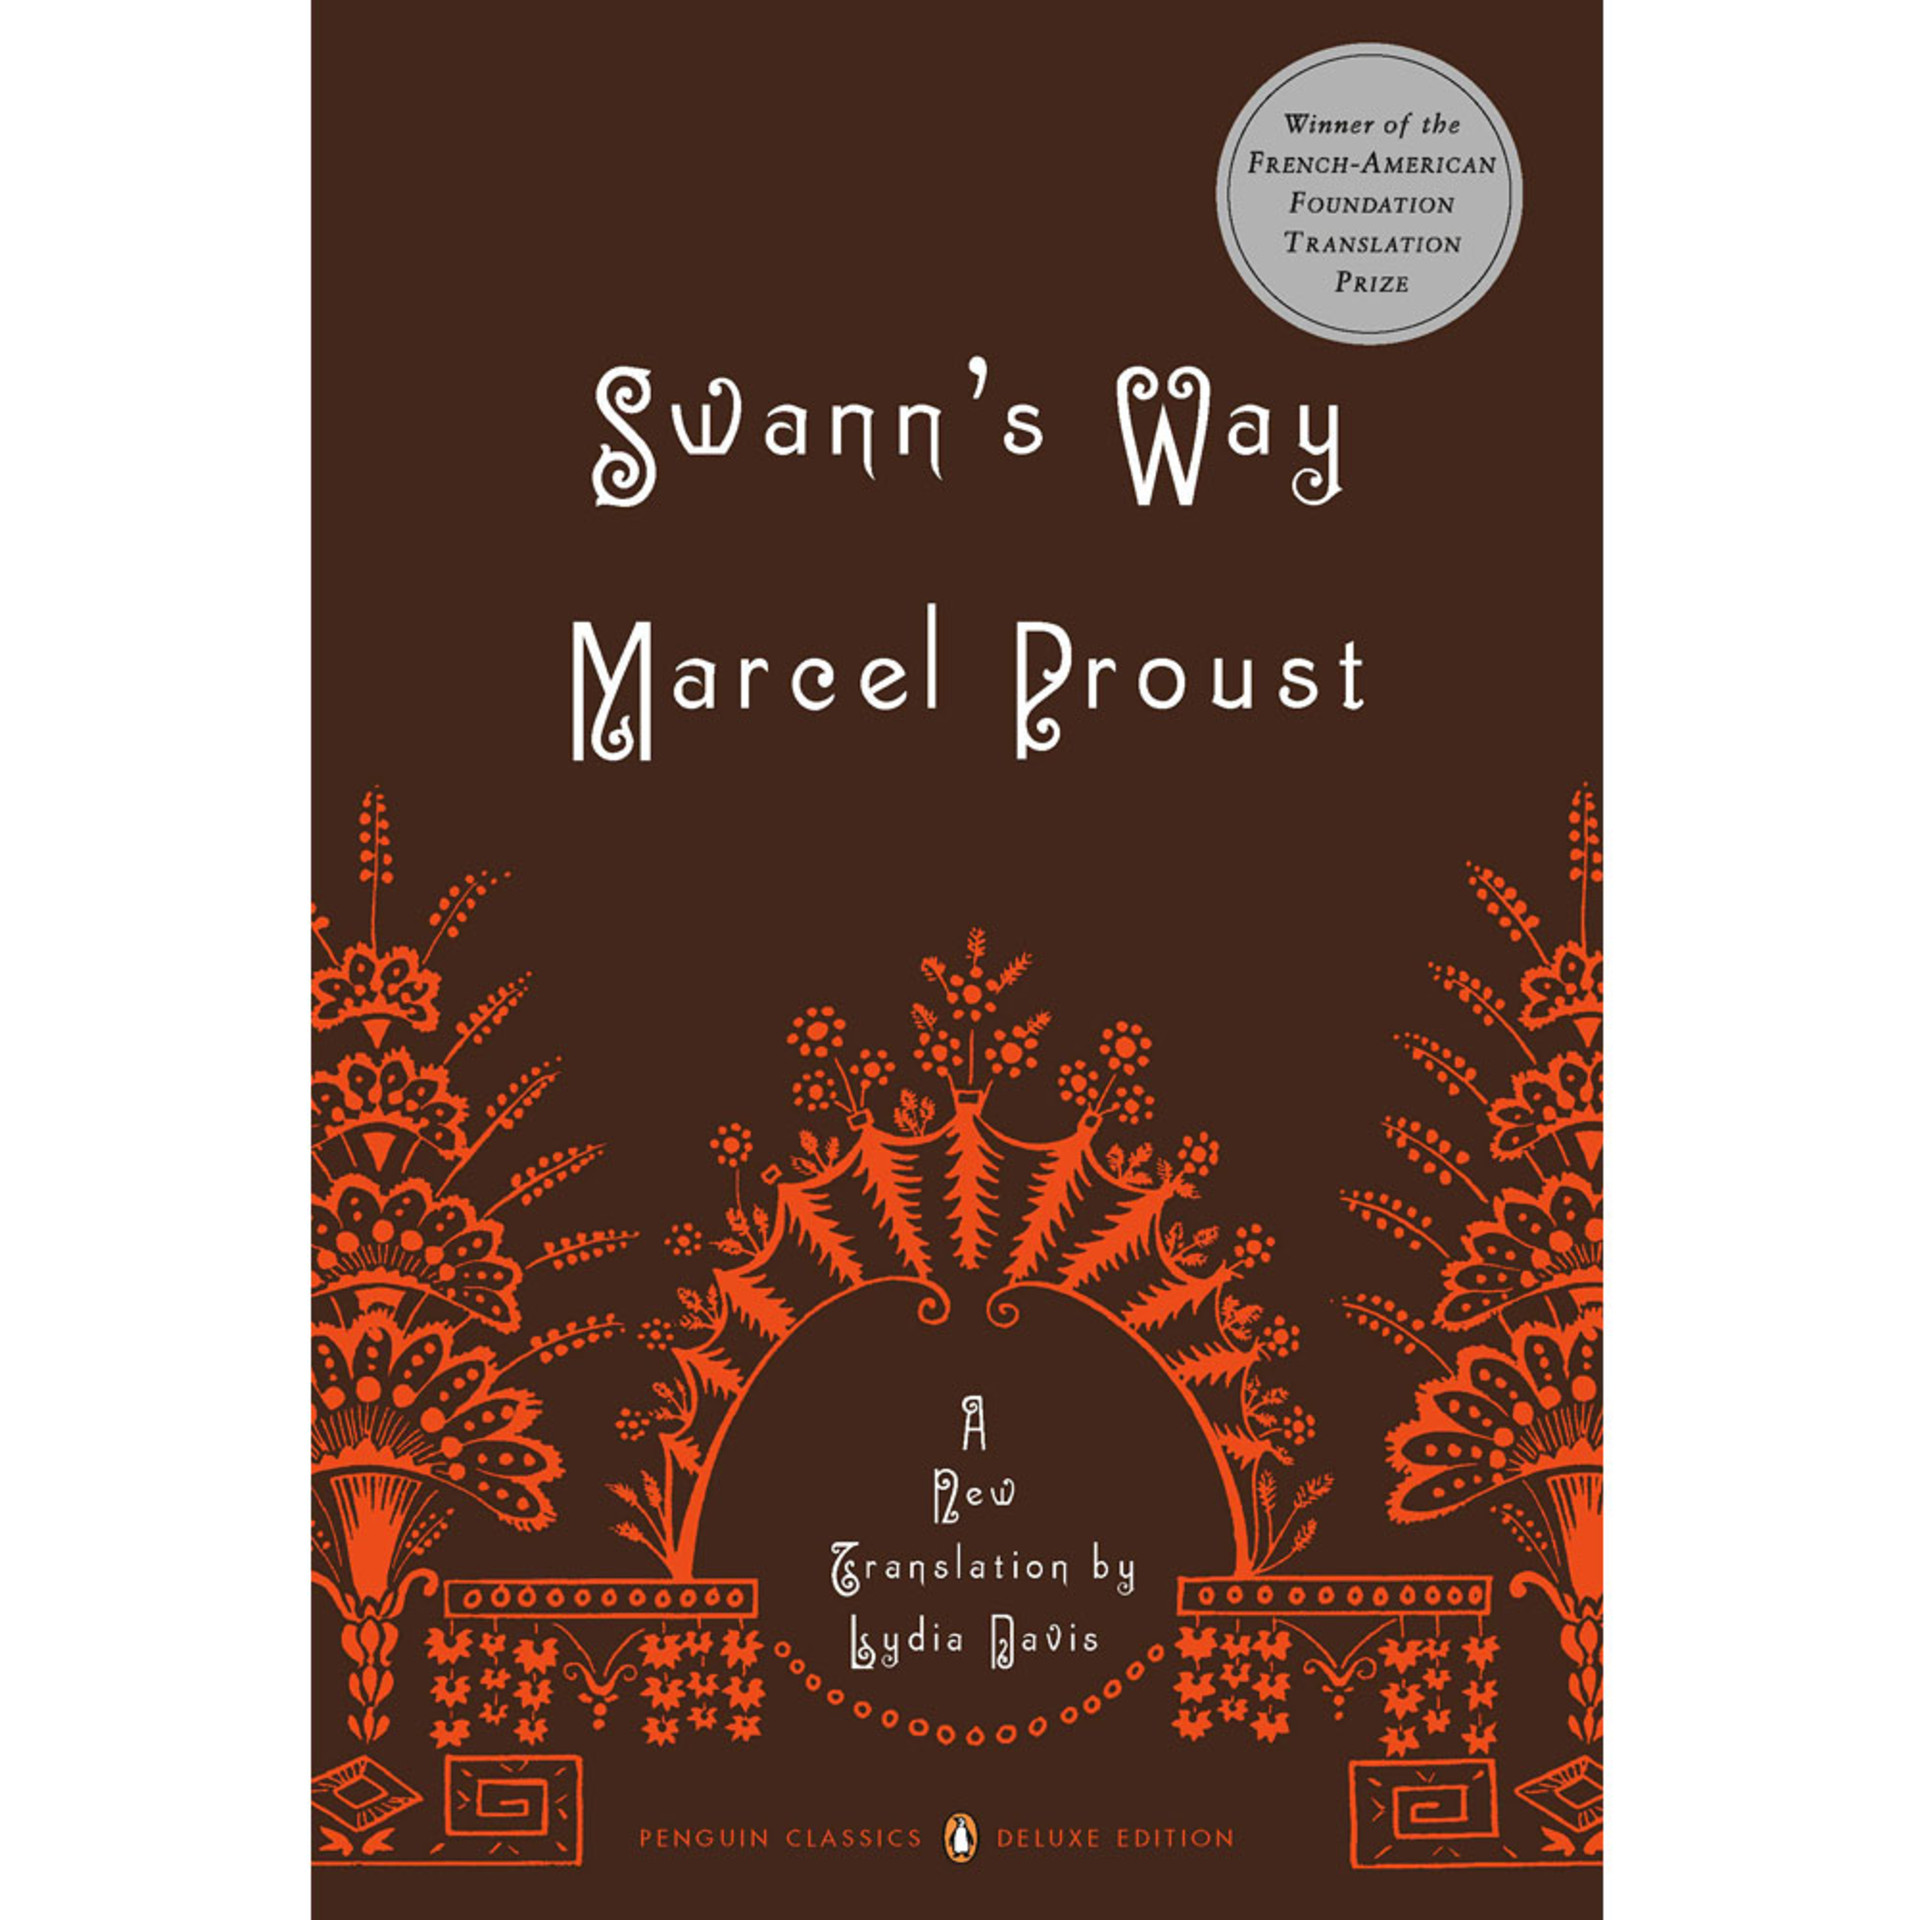 Swann's Way by Marcel Proust, a new translation by Lydia Davis